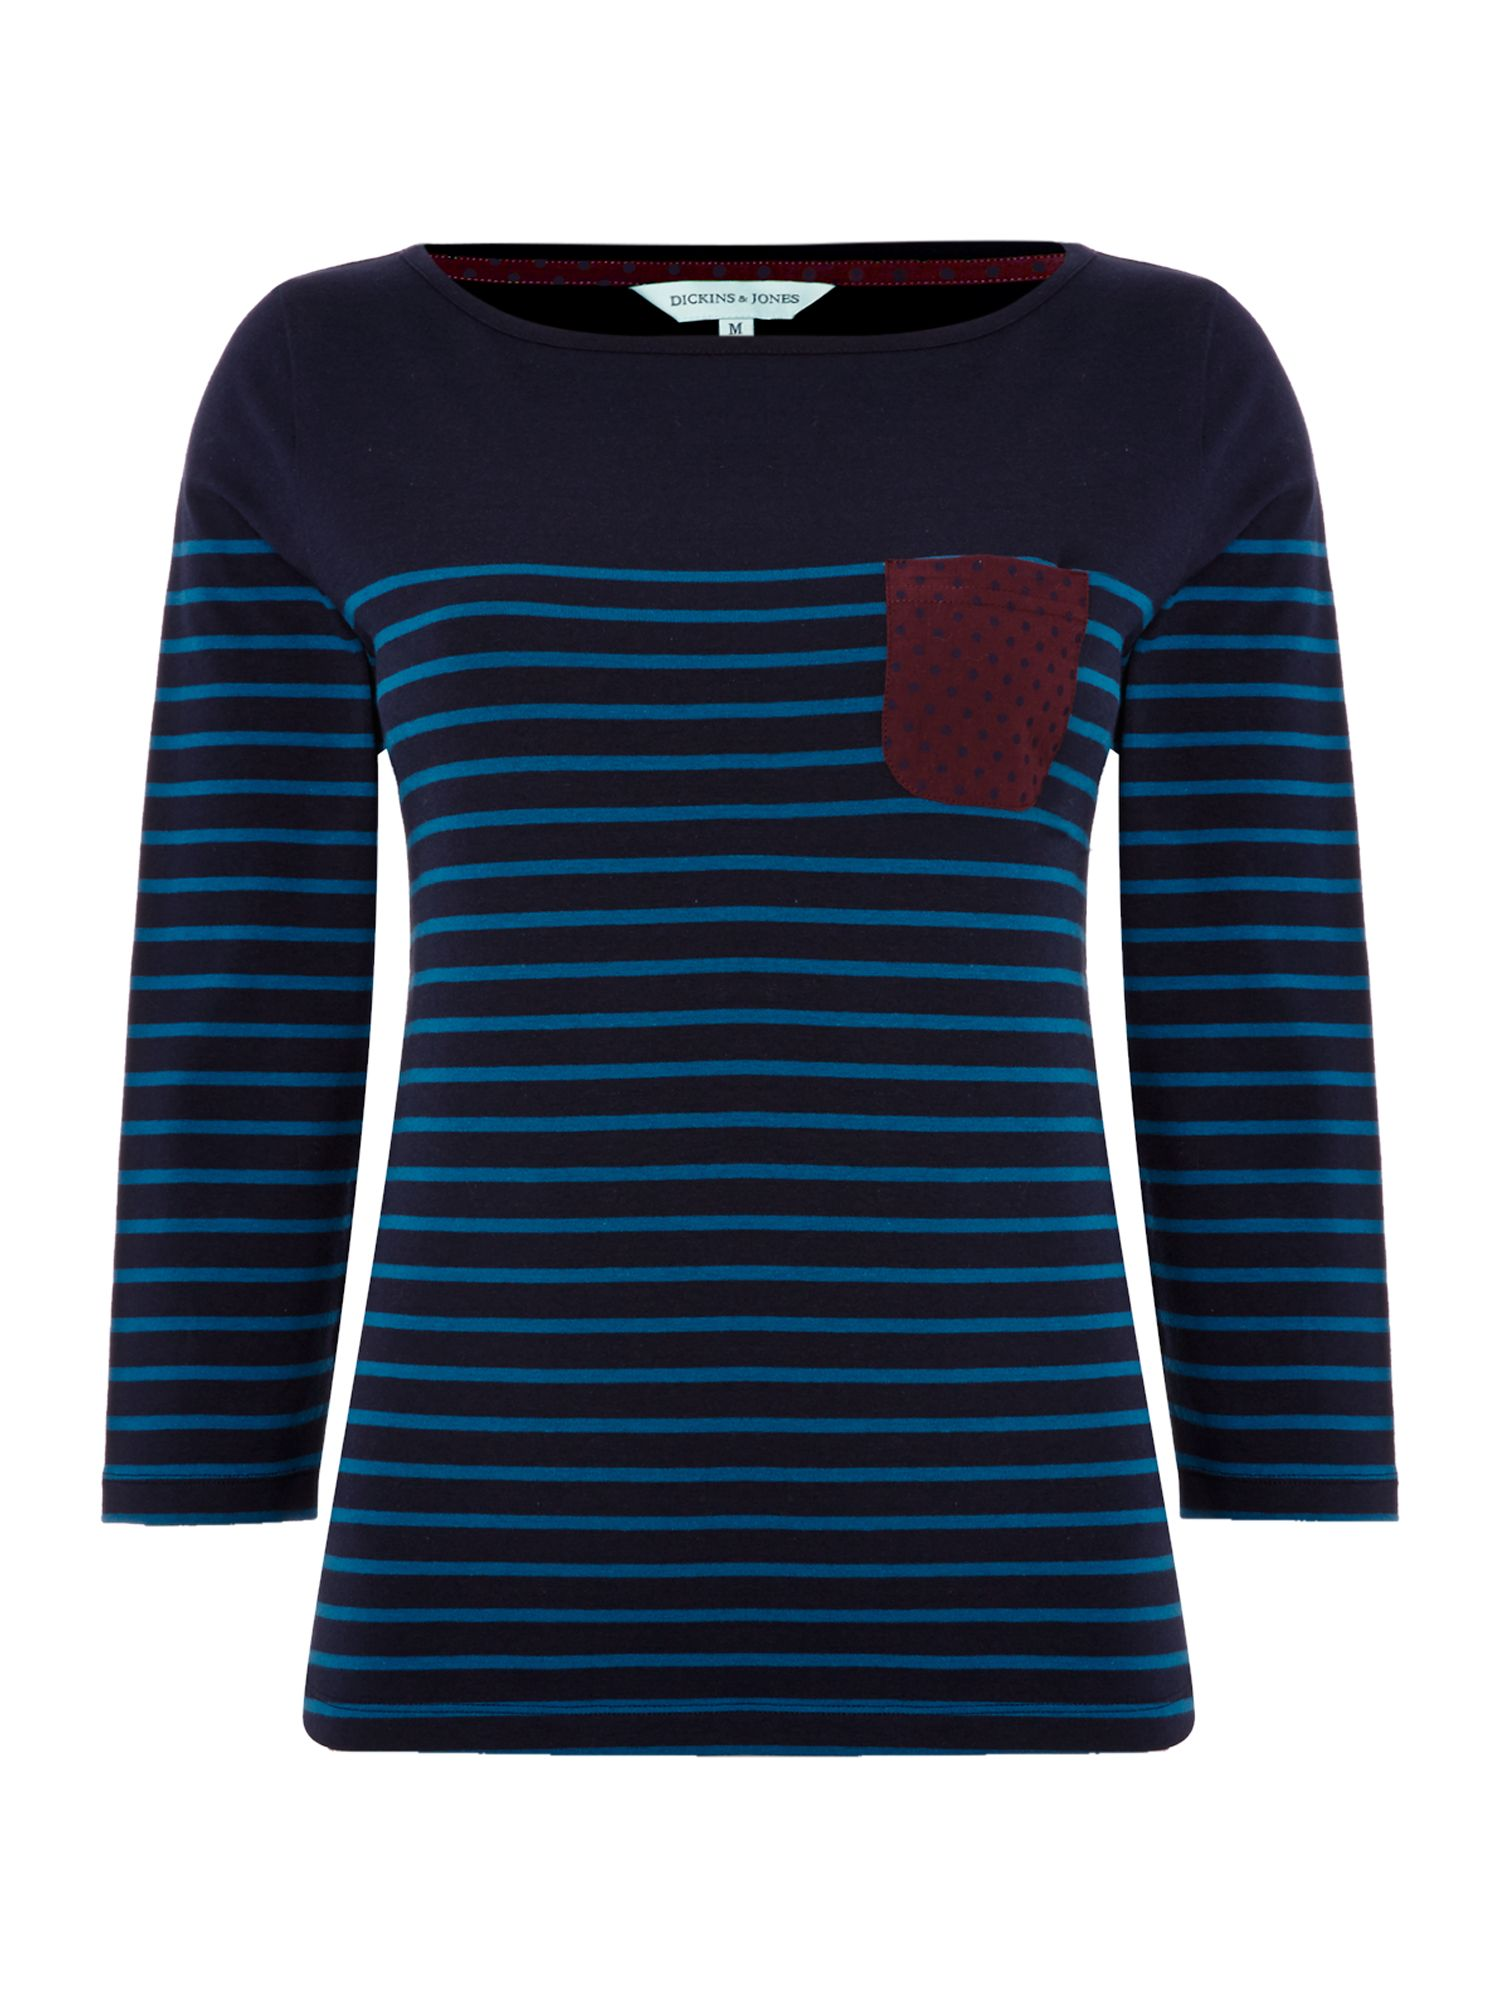 Ladies stripe jersey top with spot woven pocket